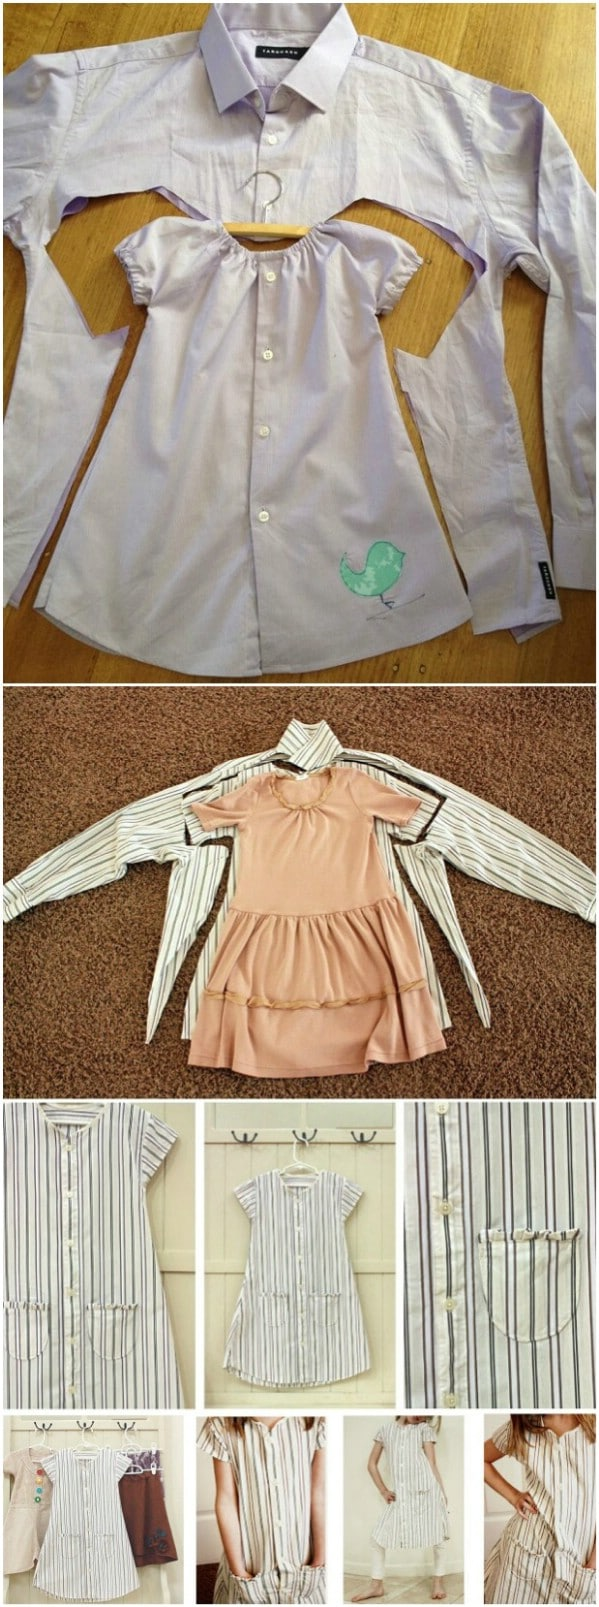 Baby Dress From Upcycled Shirt